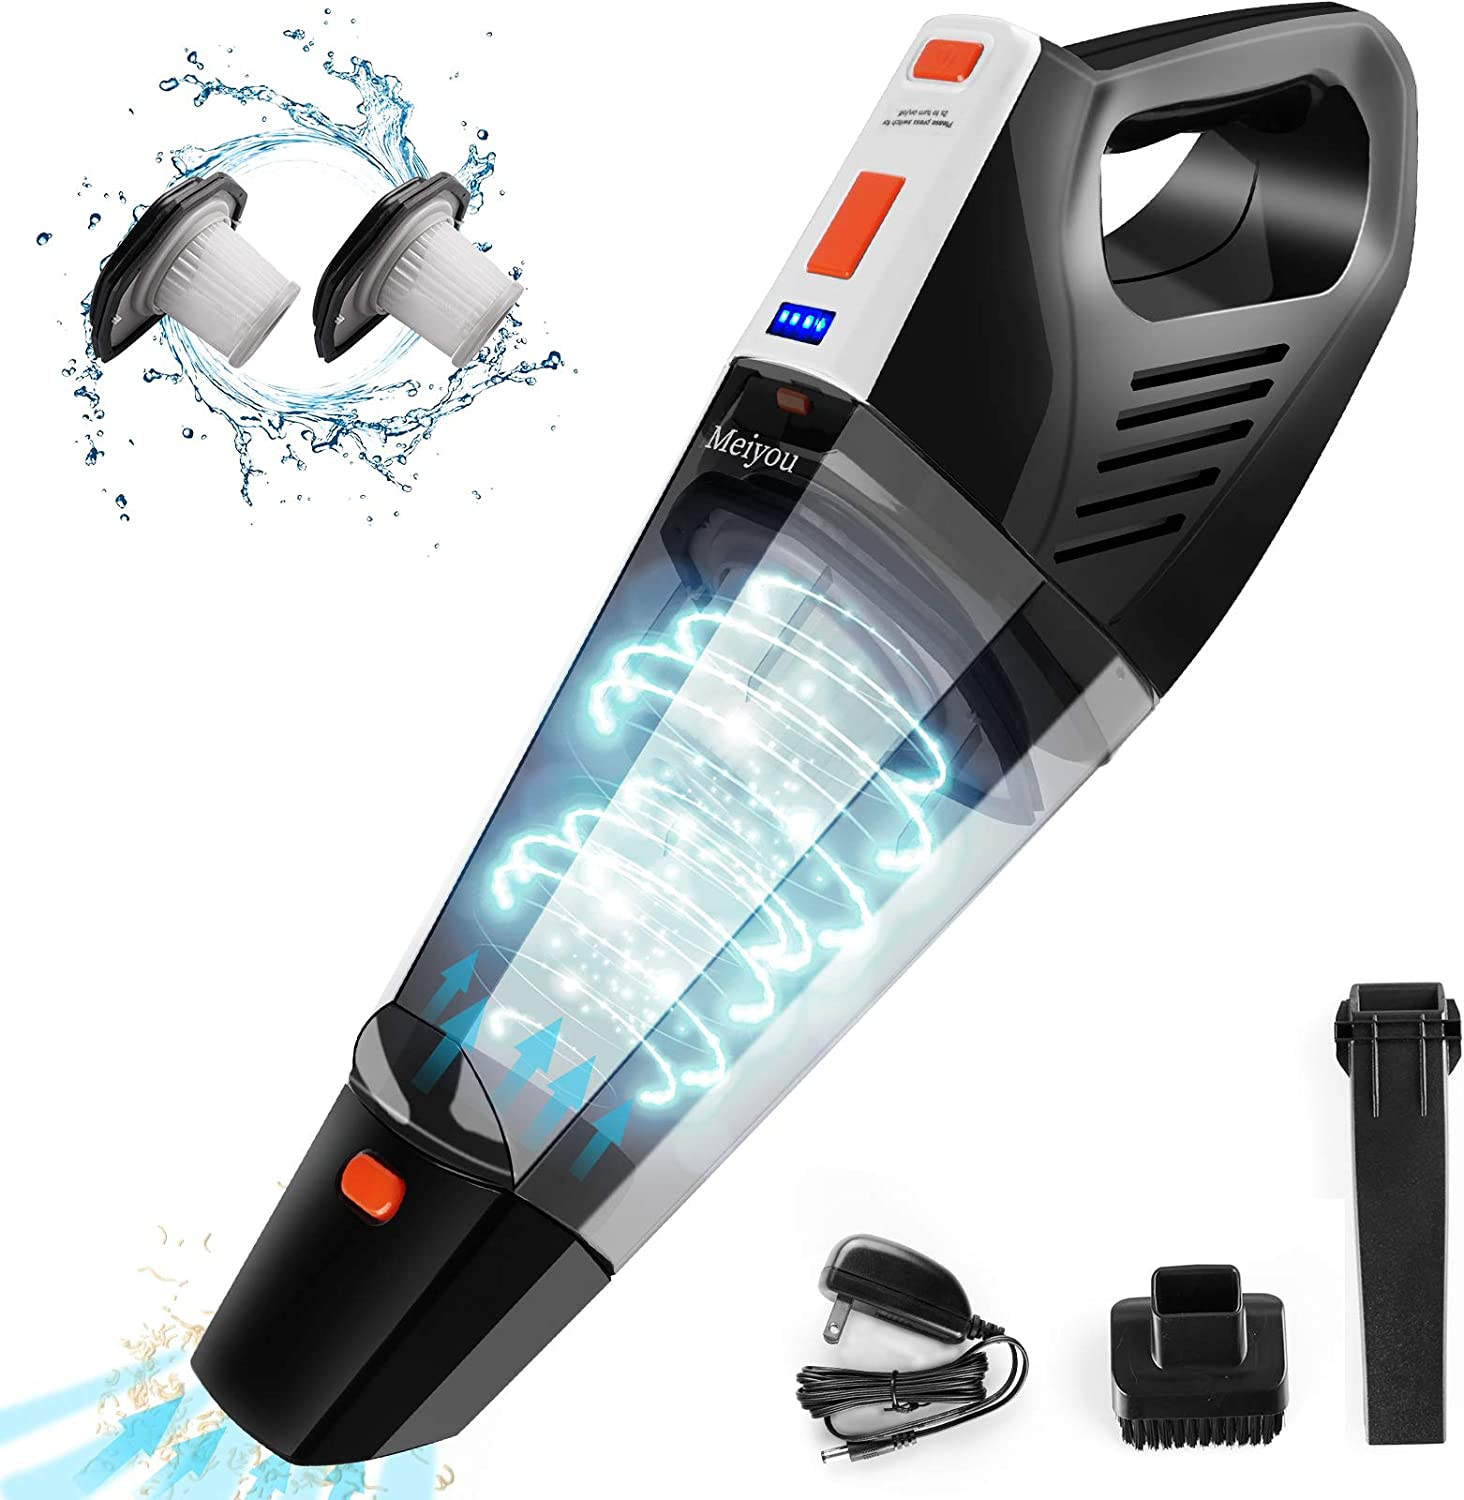 Meiyou Handheld Vacuum, Wet&Dry Vacuum Cleaner, Rechargeable Cordless Handheld Vacuum with 9KPA Strong Suction Powered by Li-ion Battery, Portable Hand Vacuumfor Pet Hair, Home and Car Cleaning